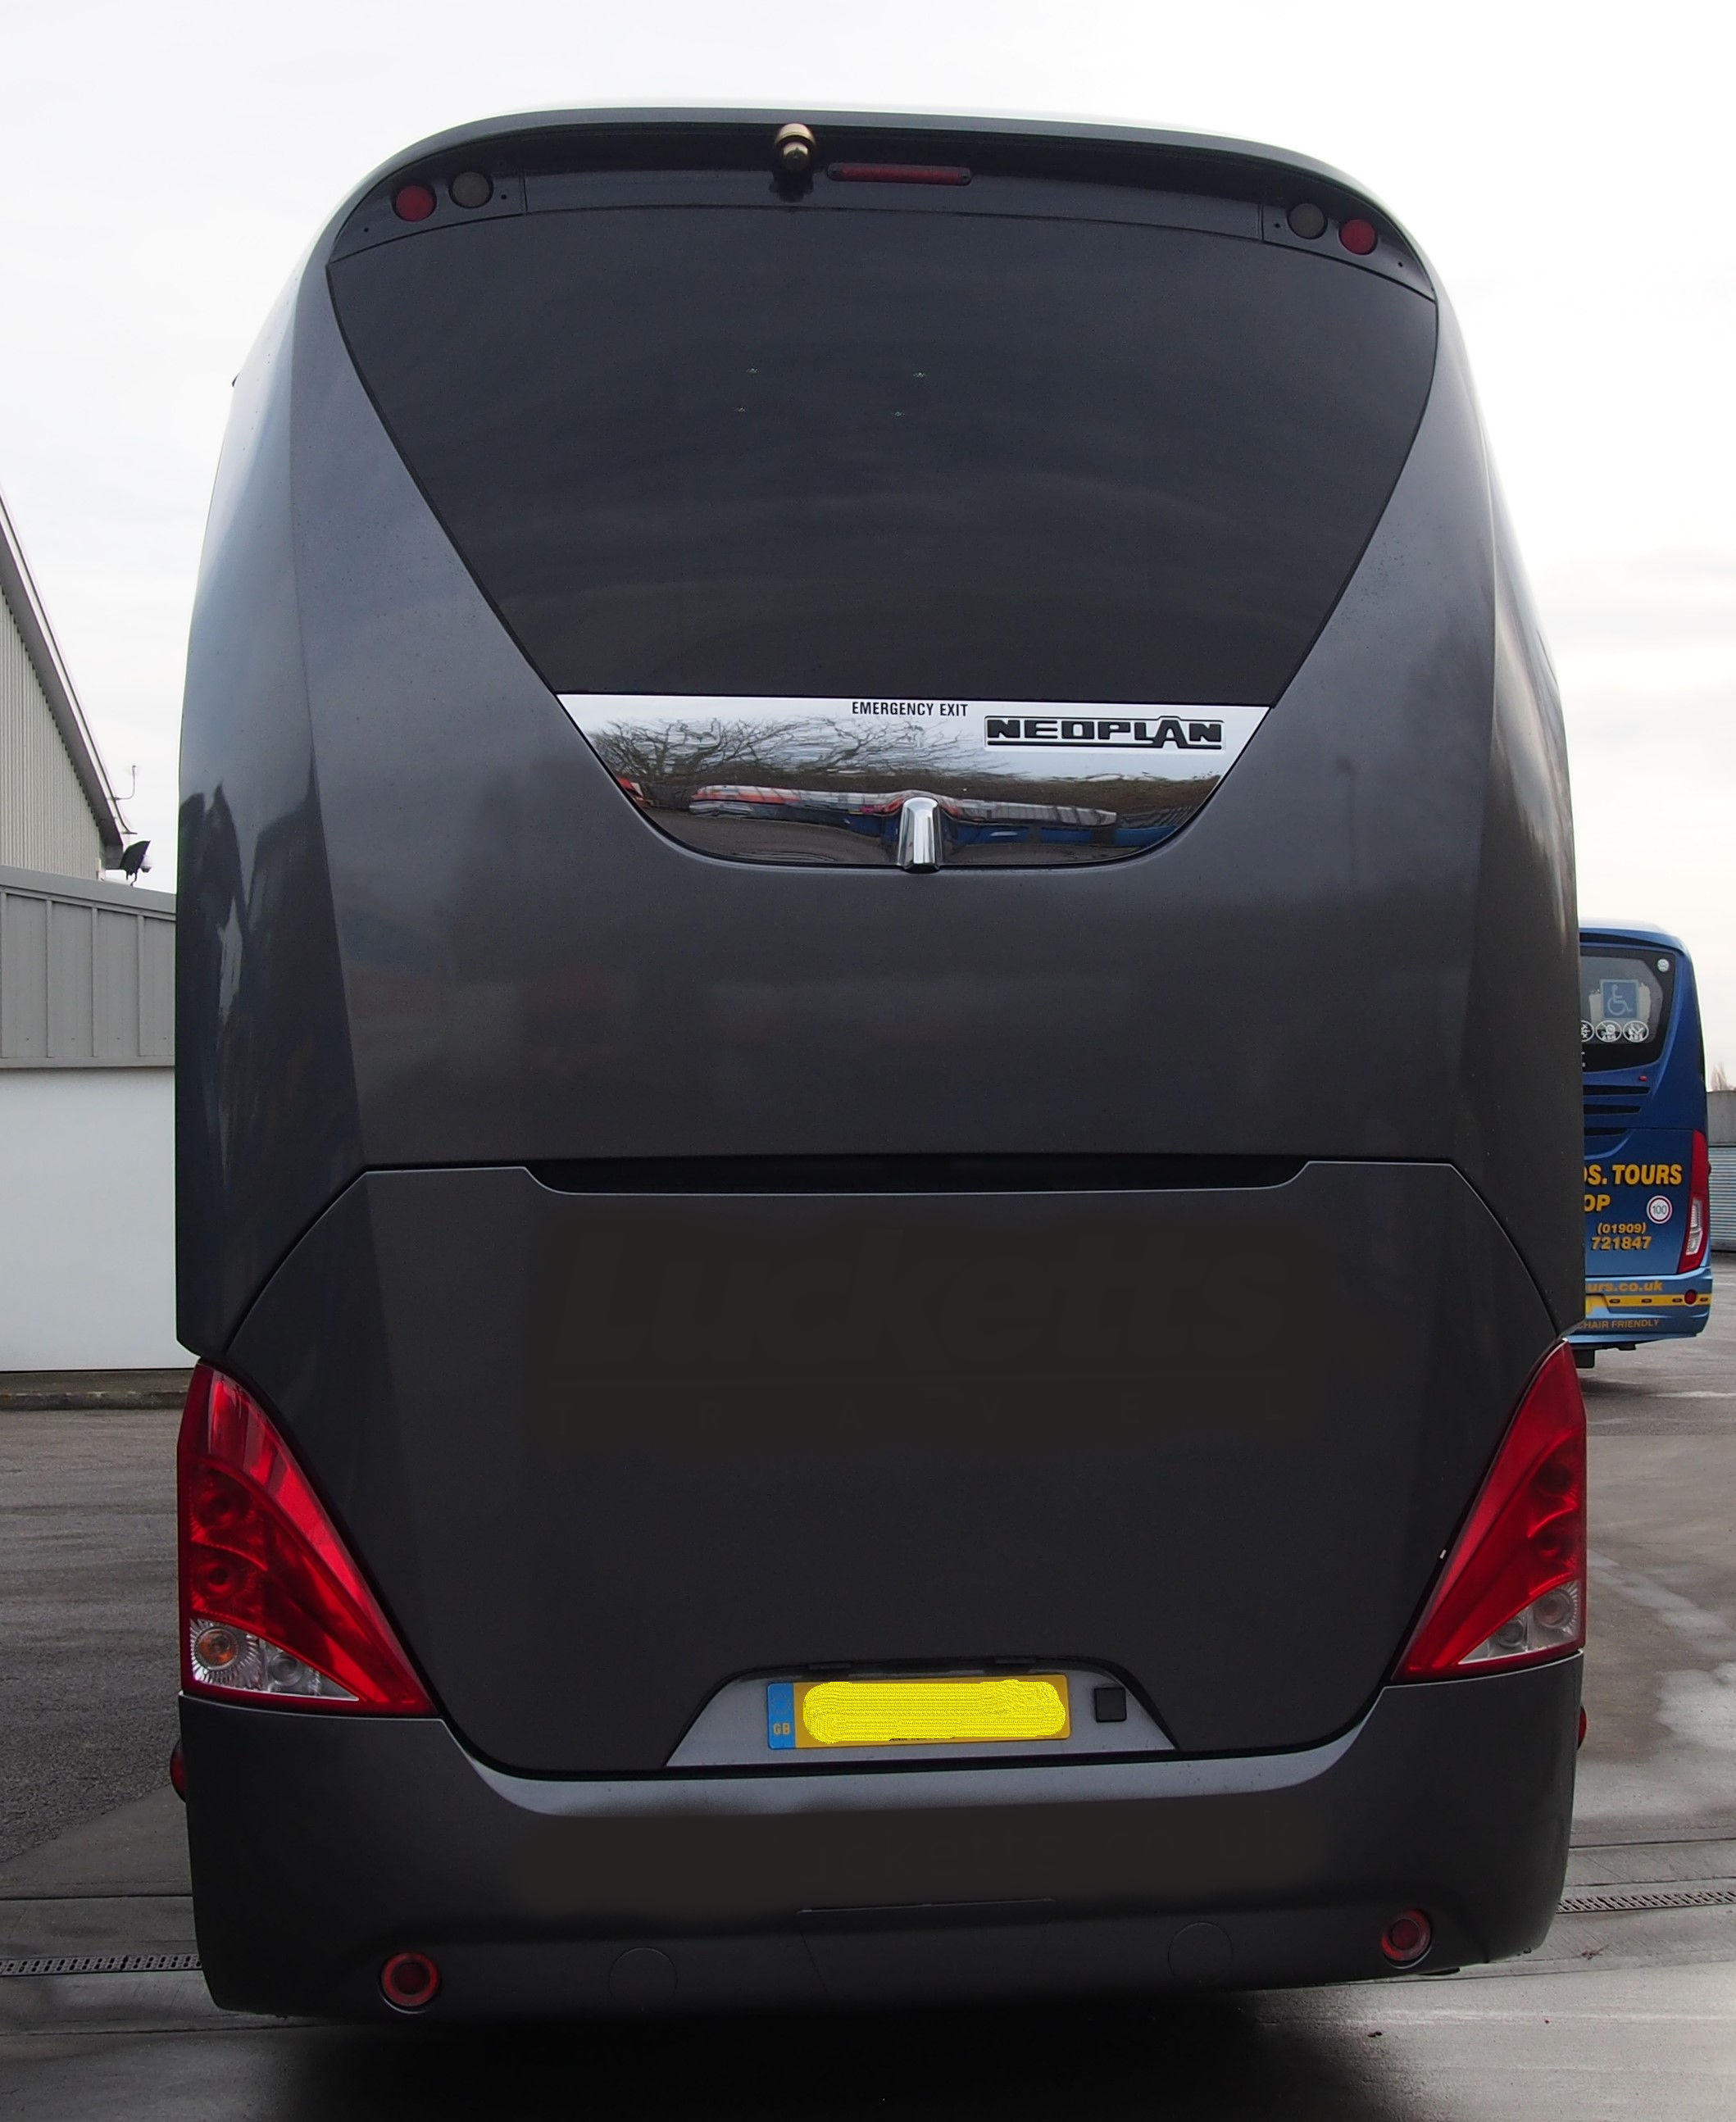 2013 MAN Neoplan Starliner � Full Team Coach Specification-image5